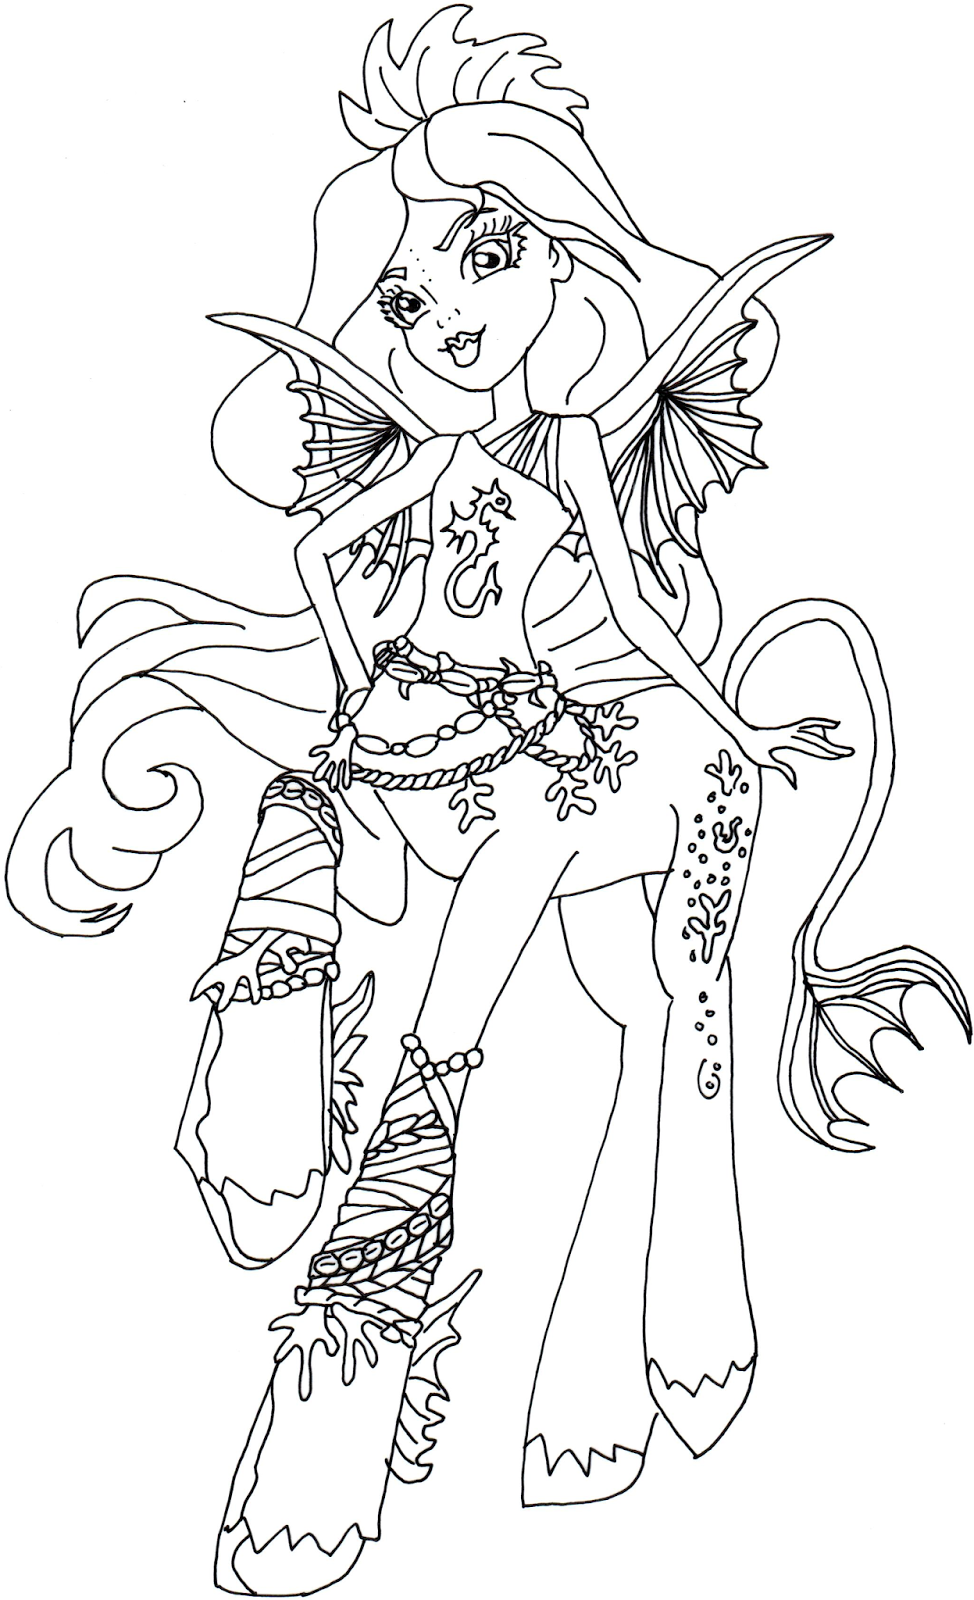 Free Printable Monster High Coloring Pages November 2015 High Coloring Pages Printables